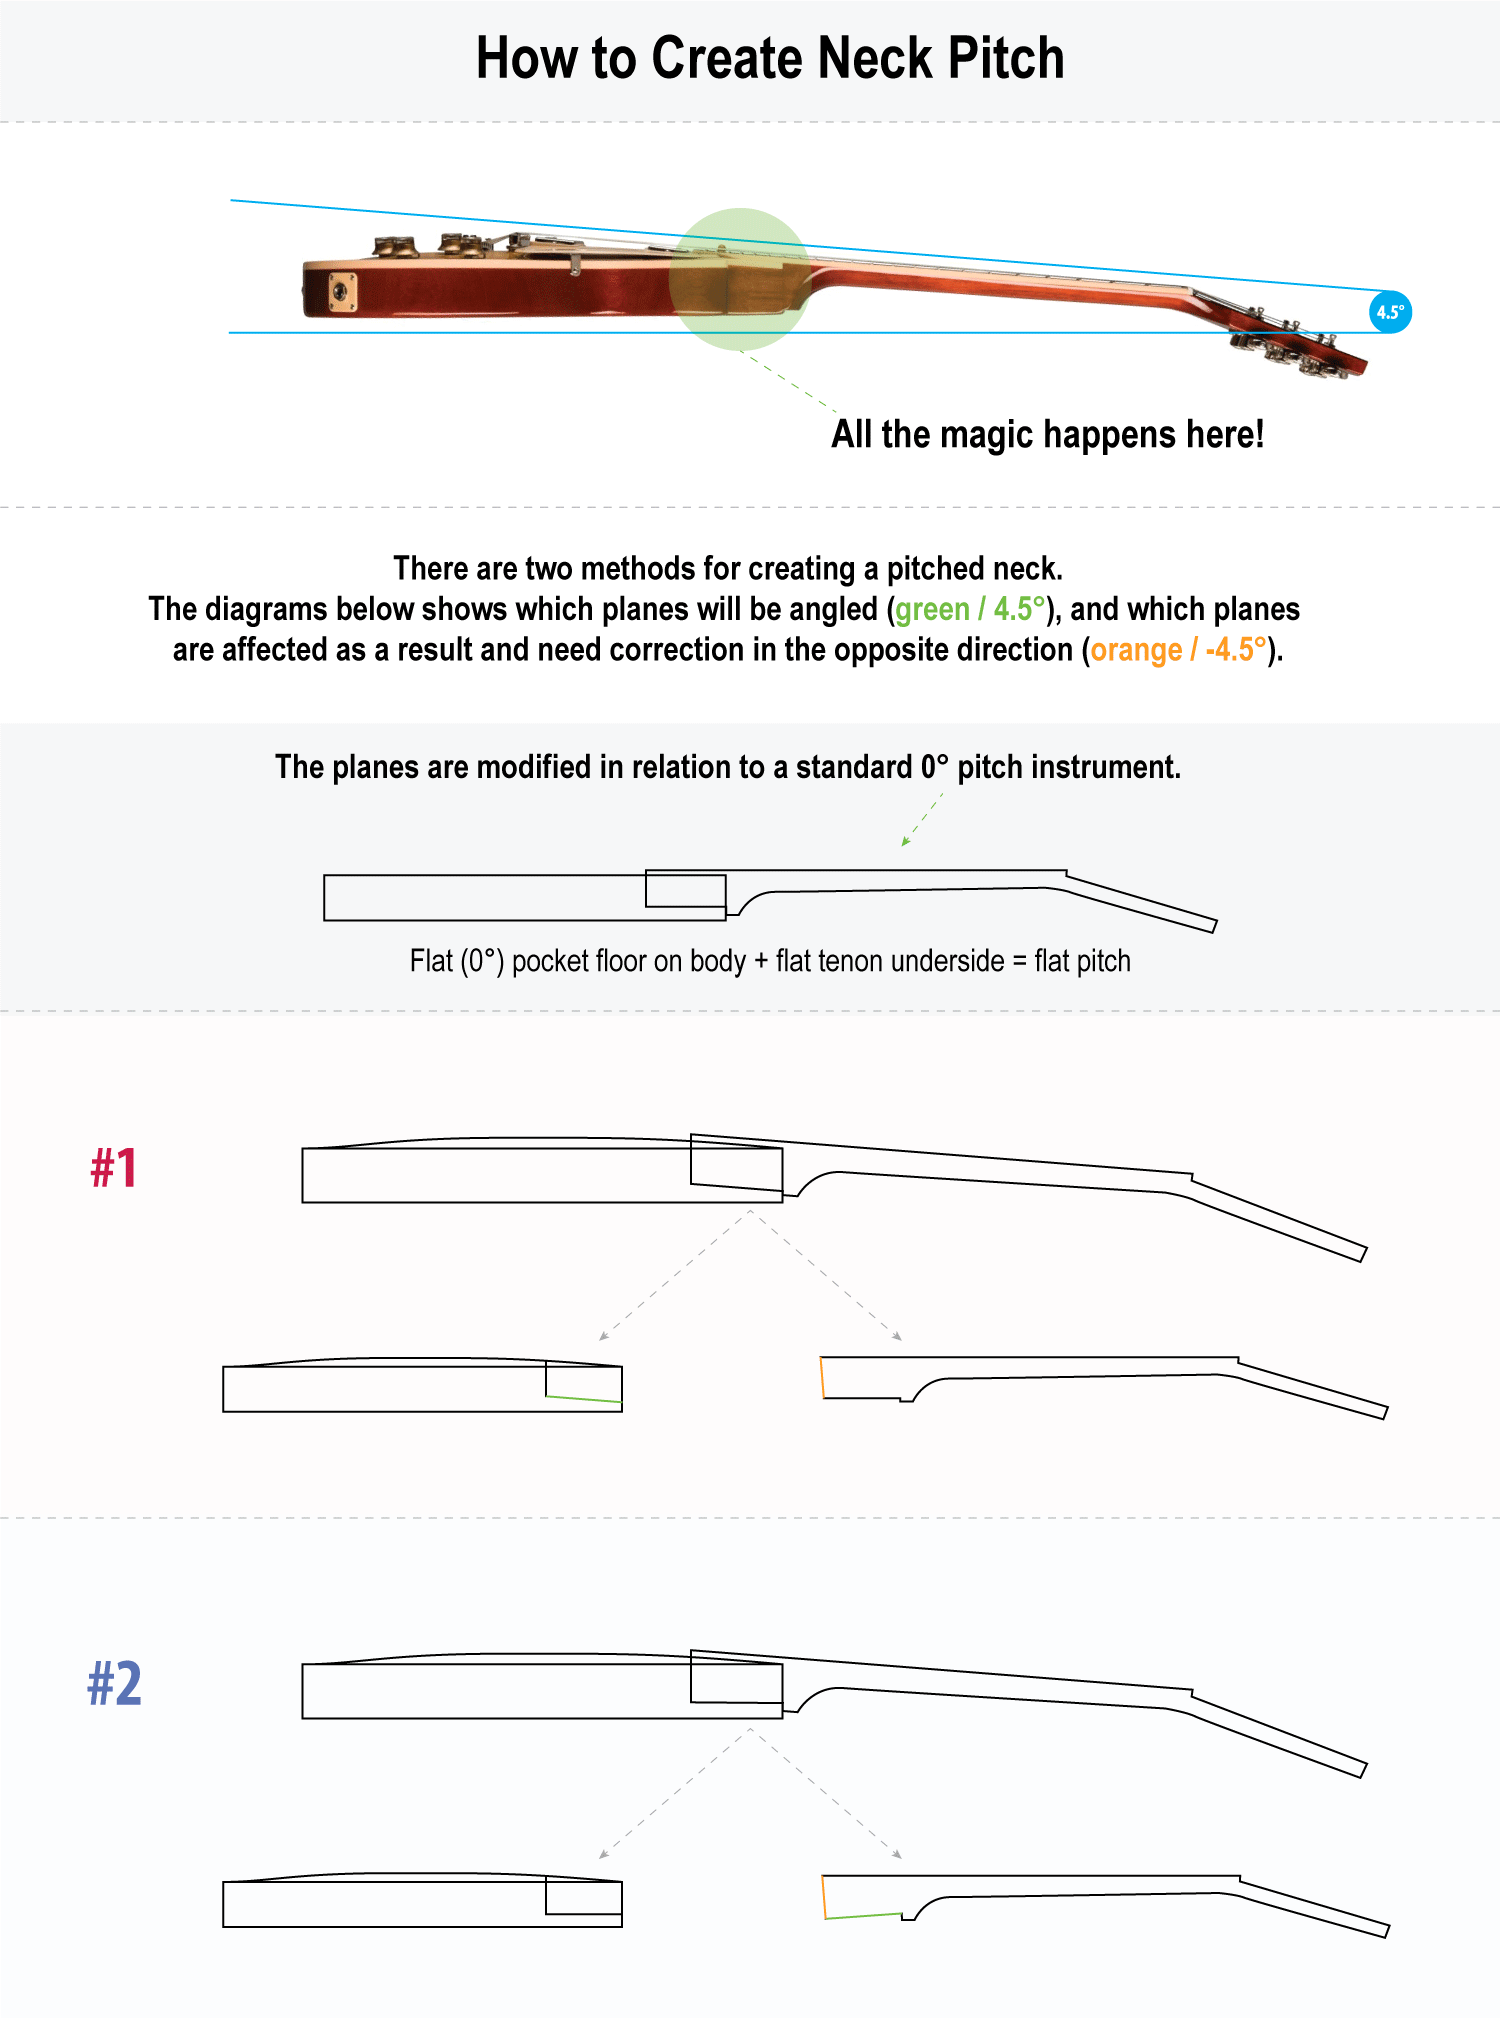 Diagram showing two methods of creating a pitched guitar neck.